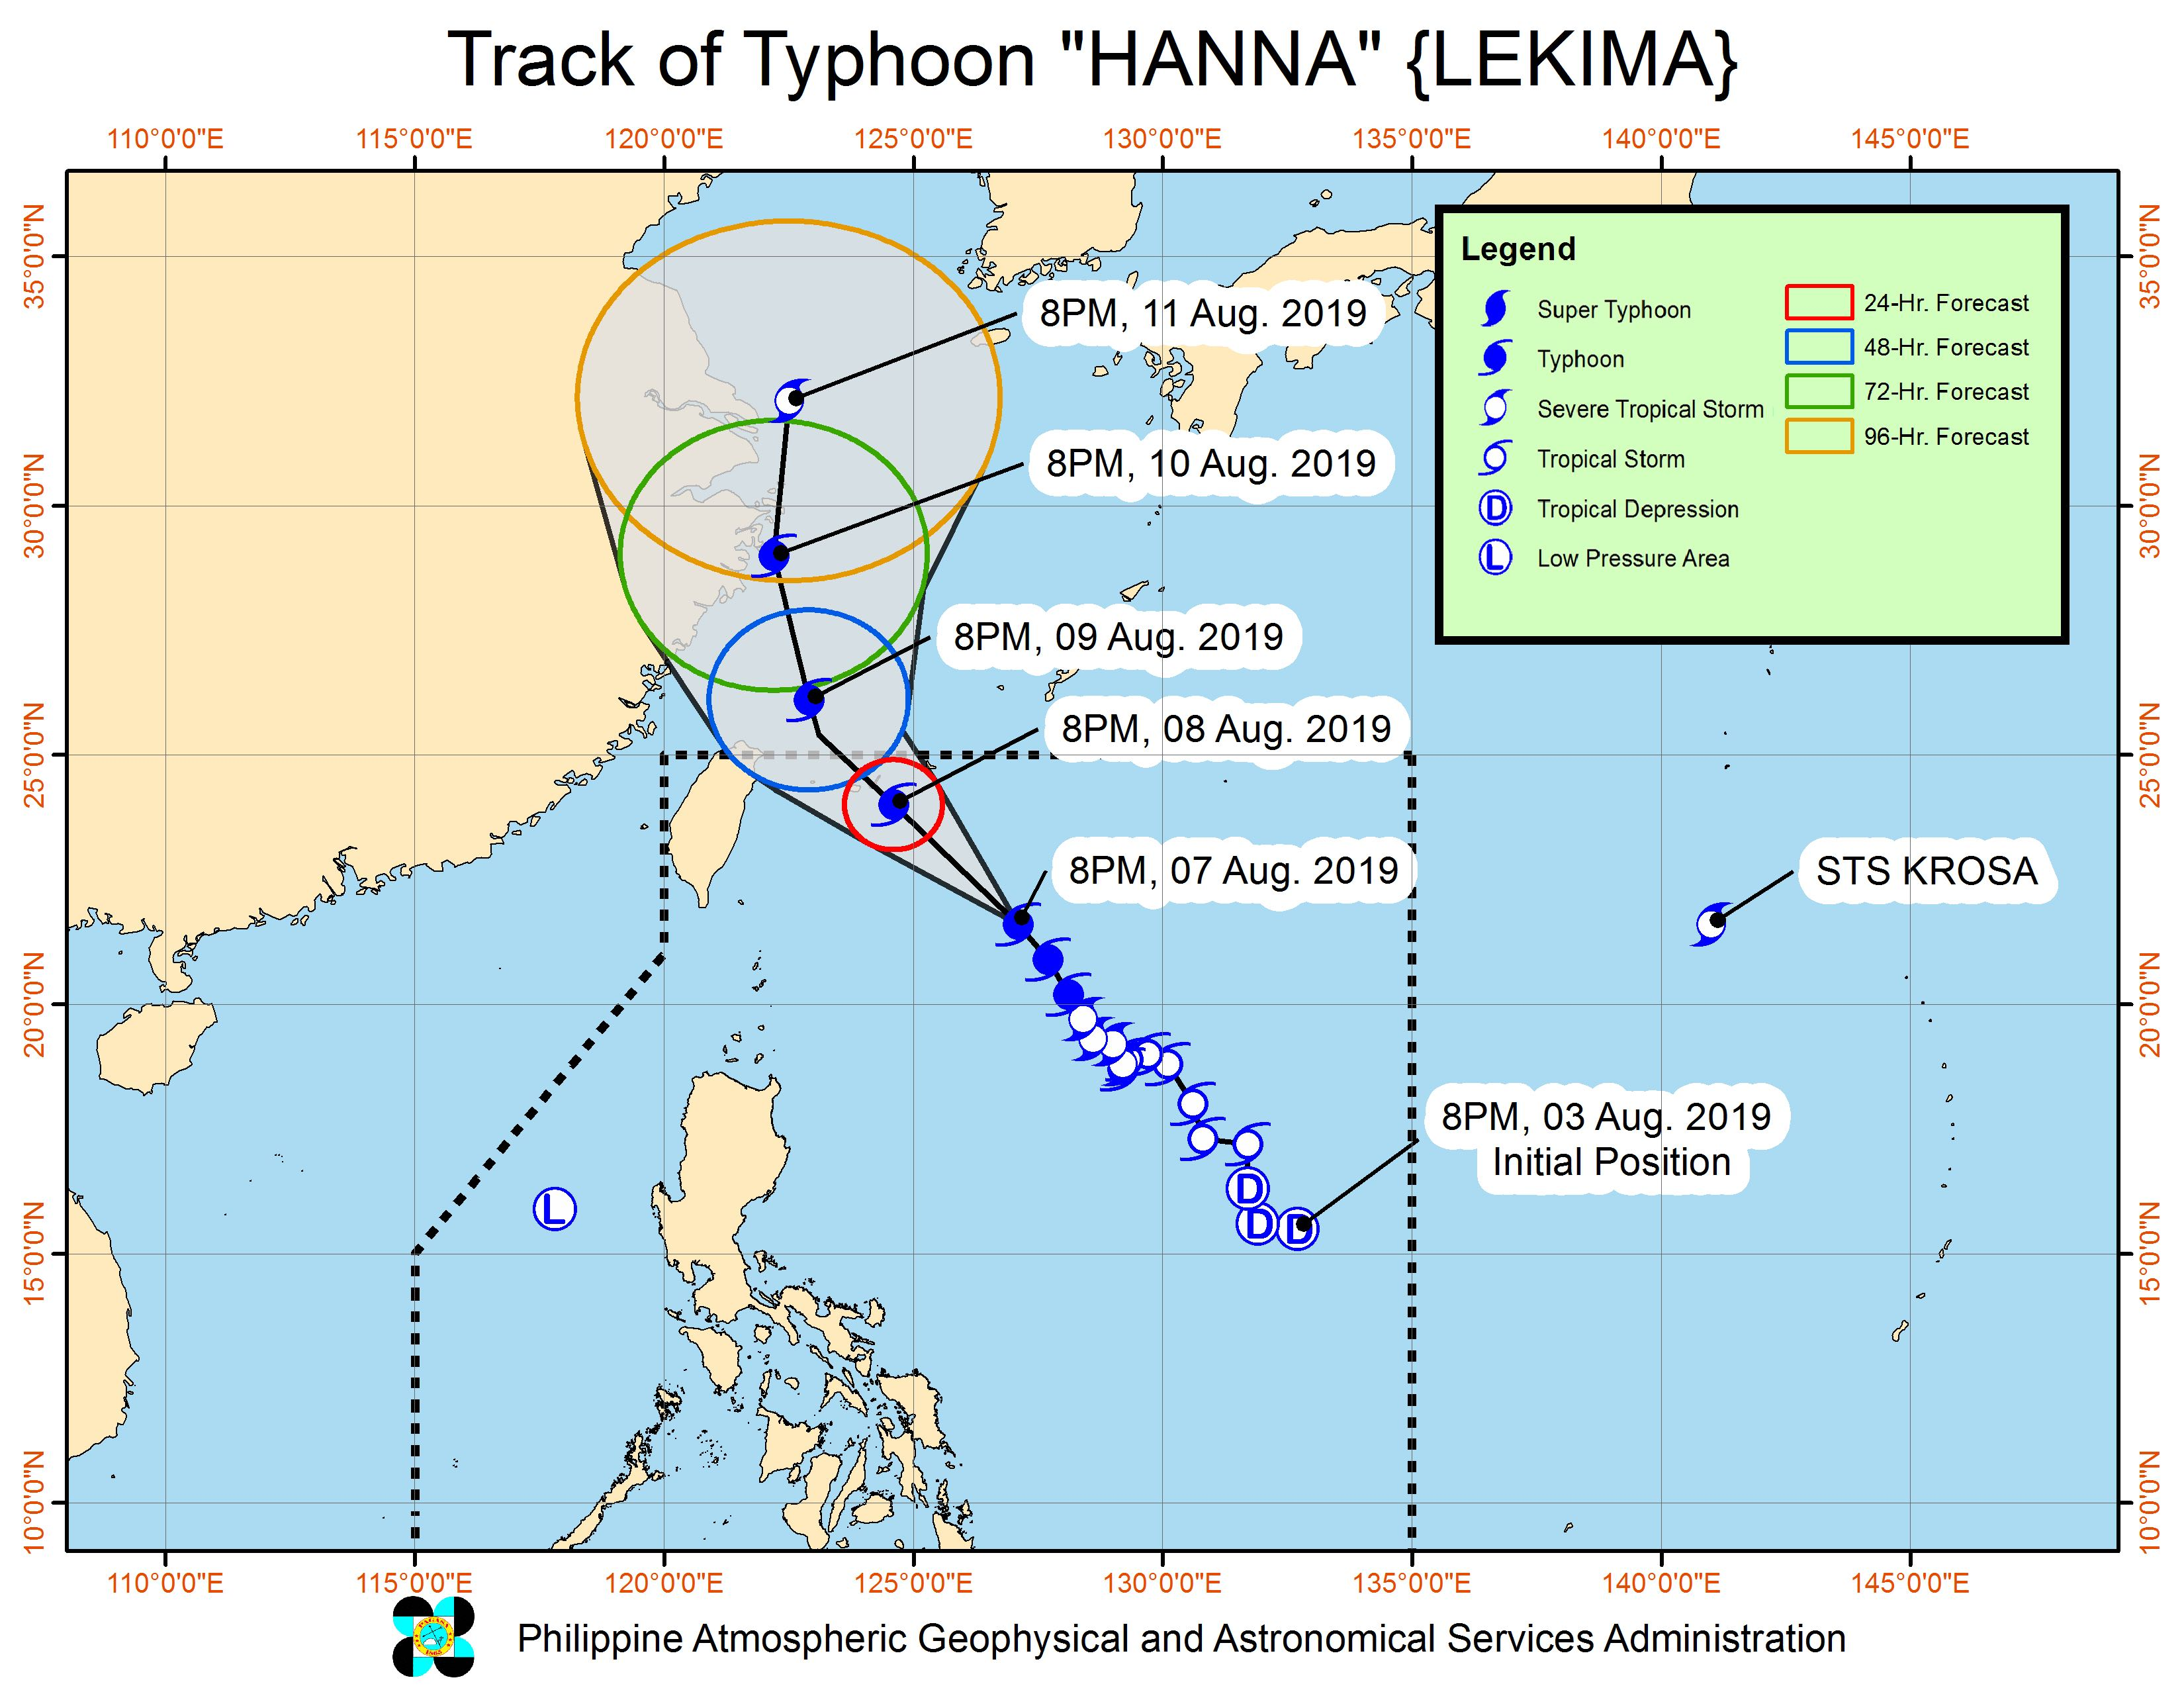 Forecast track of Typhoon Hanna (Lekima) as of August 7, 2019, 11 pm. Image from PAGASA